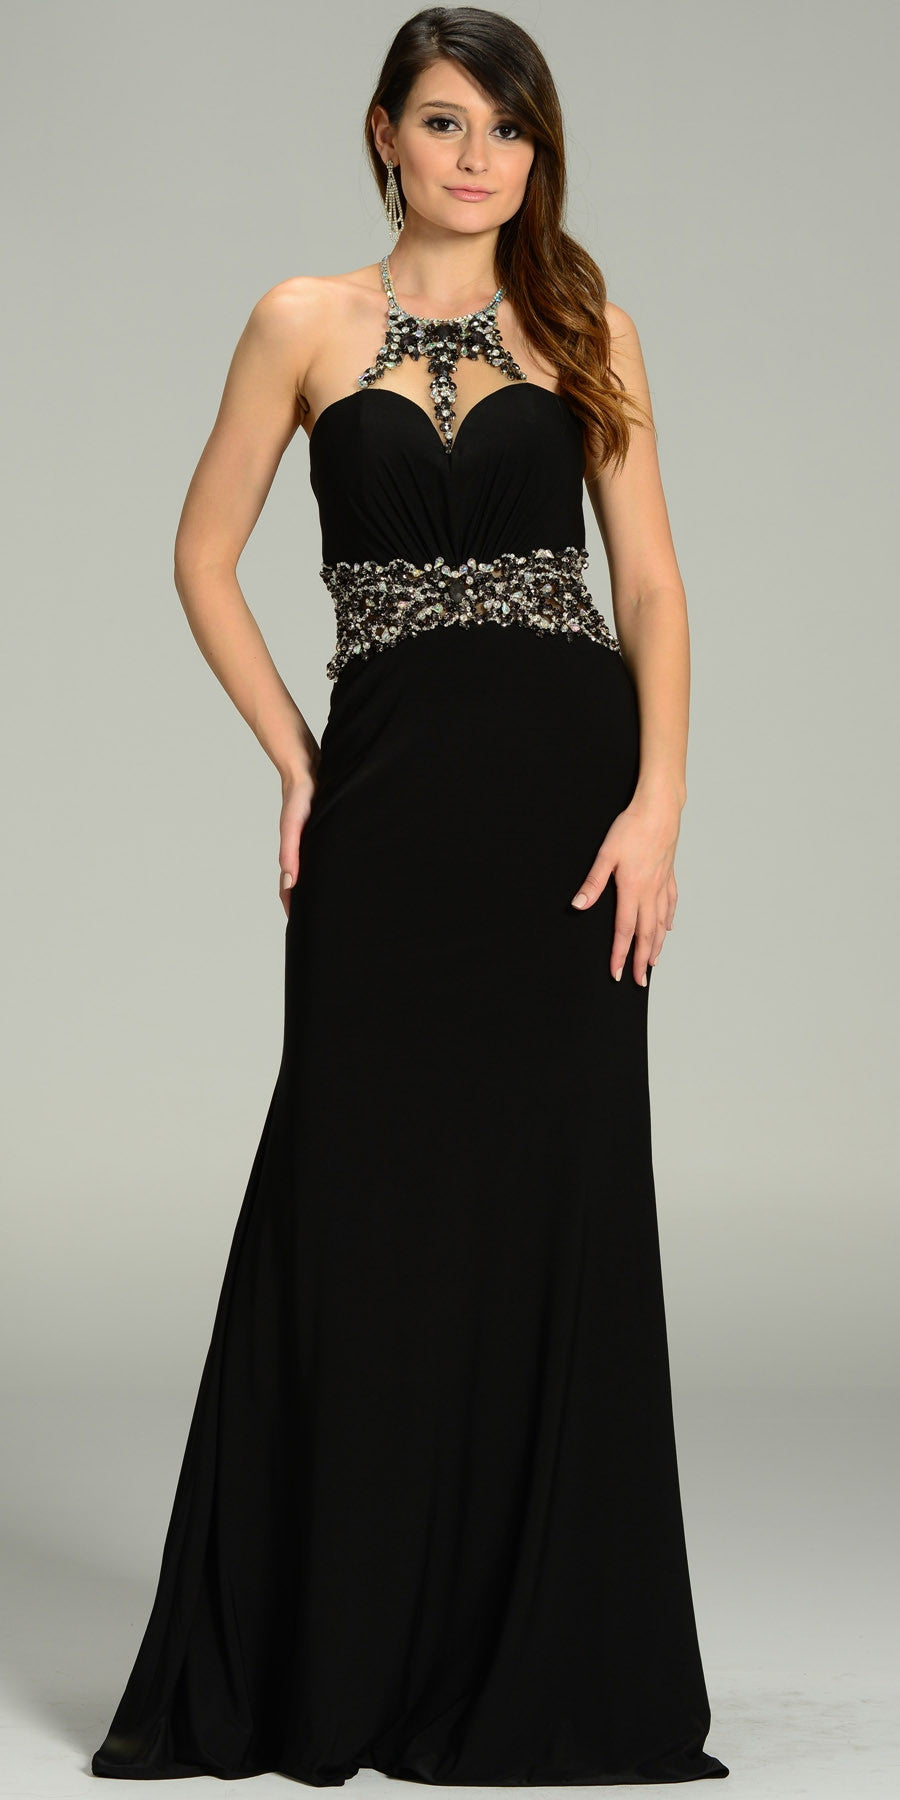 ON SPECIAL LIMITED STOCK - Rhinestone Halter Neck ITY Formal Black Dress Floor Length